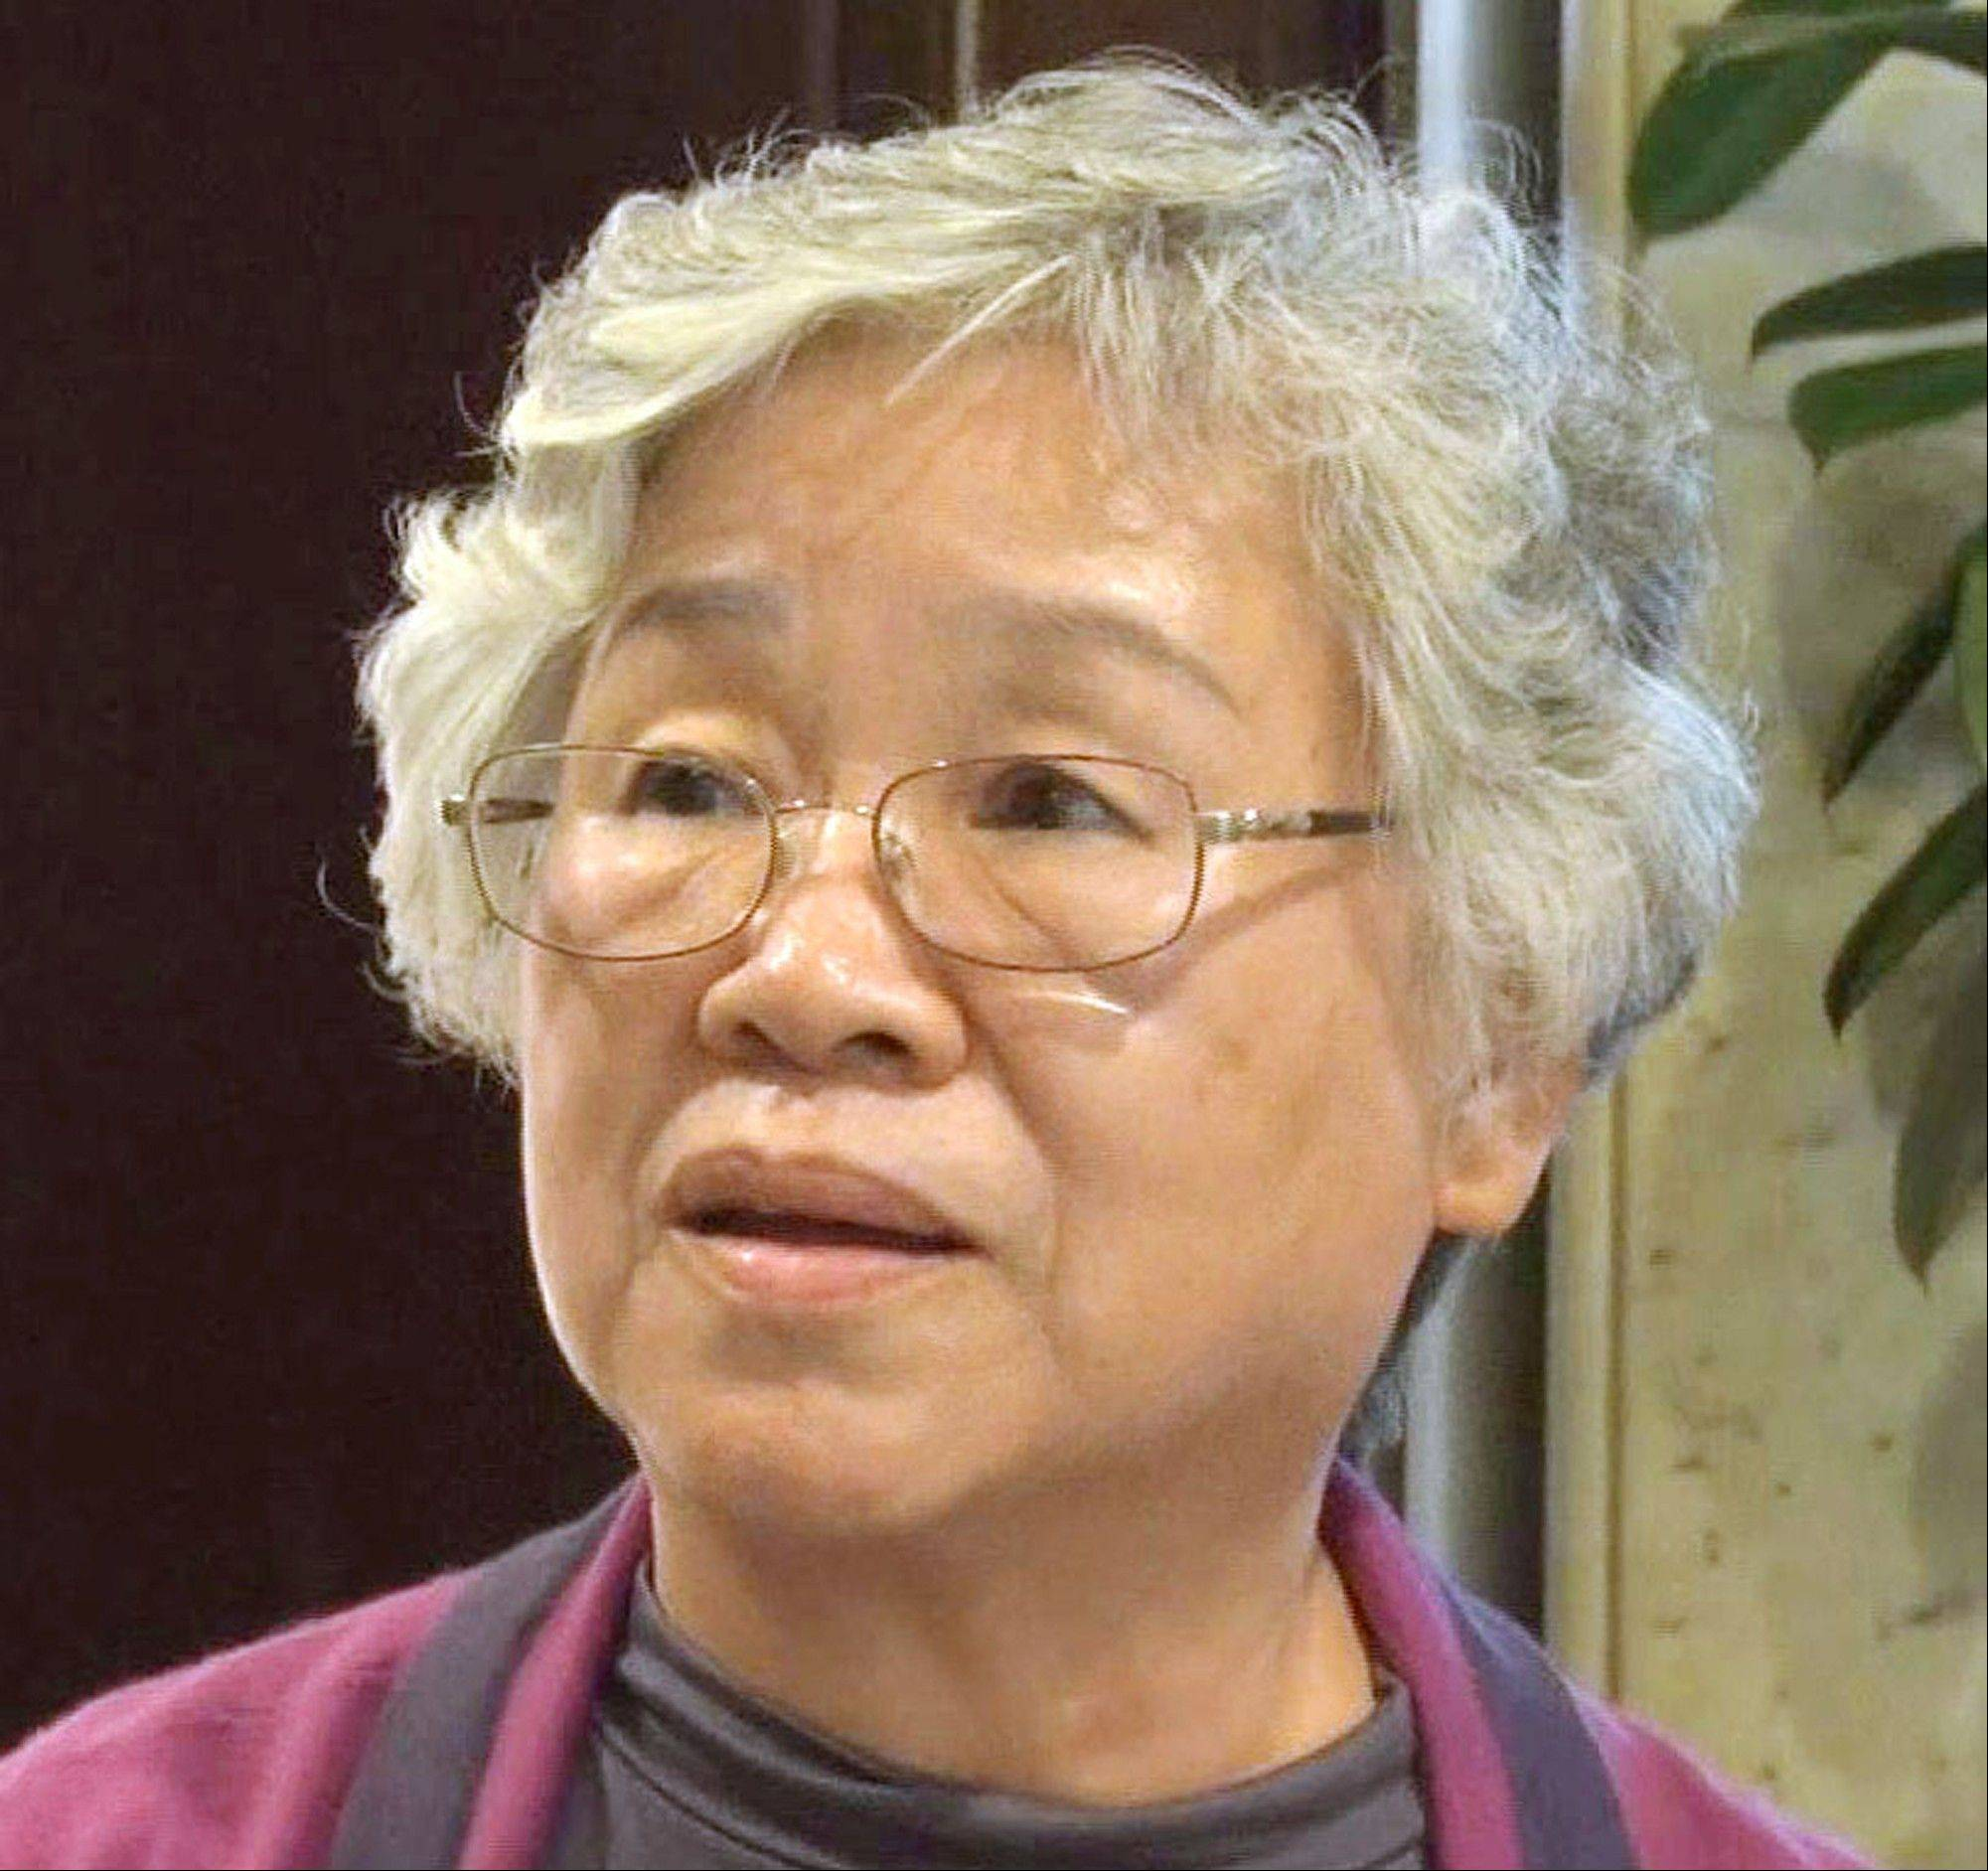 Myunghee Bae, who has been allowed into North Korea to see her son, Kenneth, a Korean-American Christian missionary, told Japan's Kyodo News agency that his health has been improving since he was transferred to a hospital from a prison where he was serving out a sentence of 15 years hard labor.